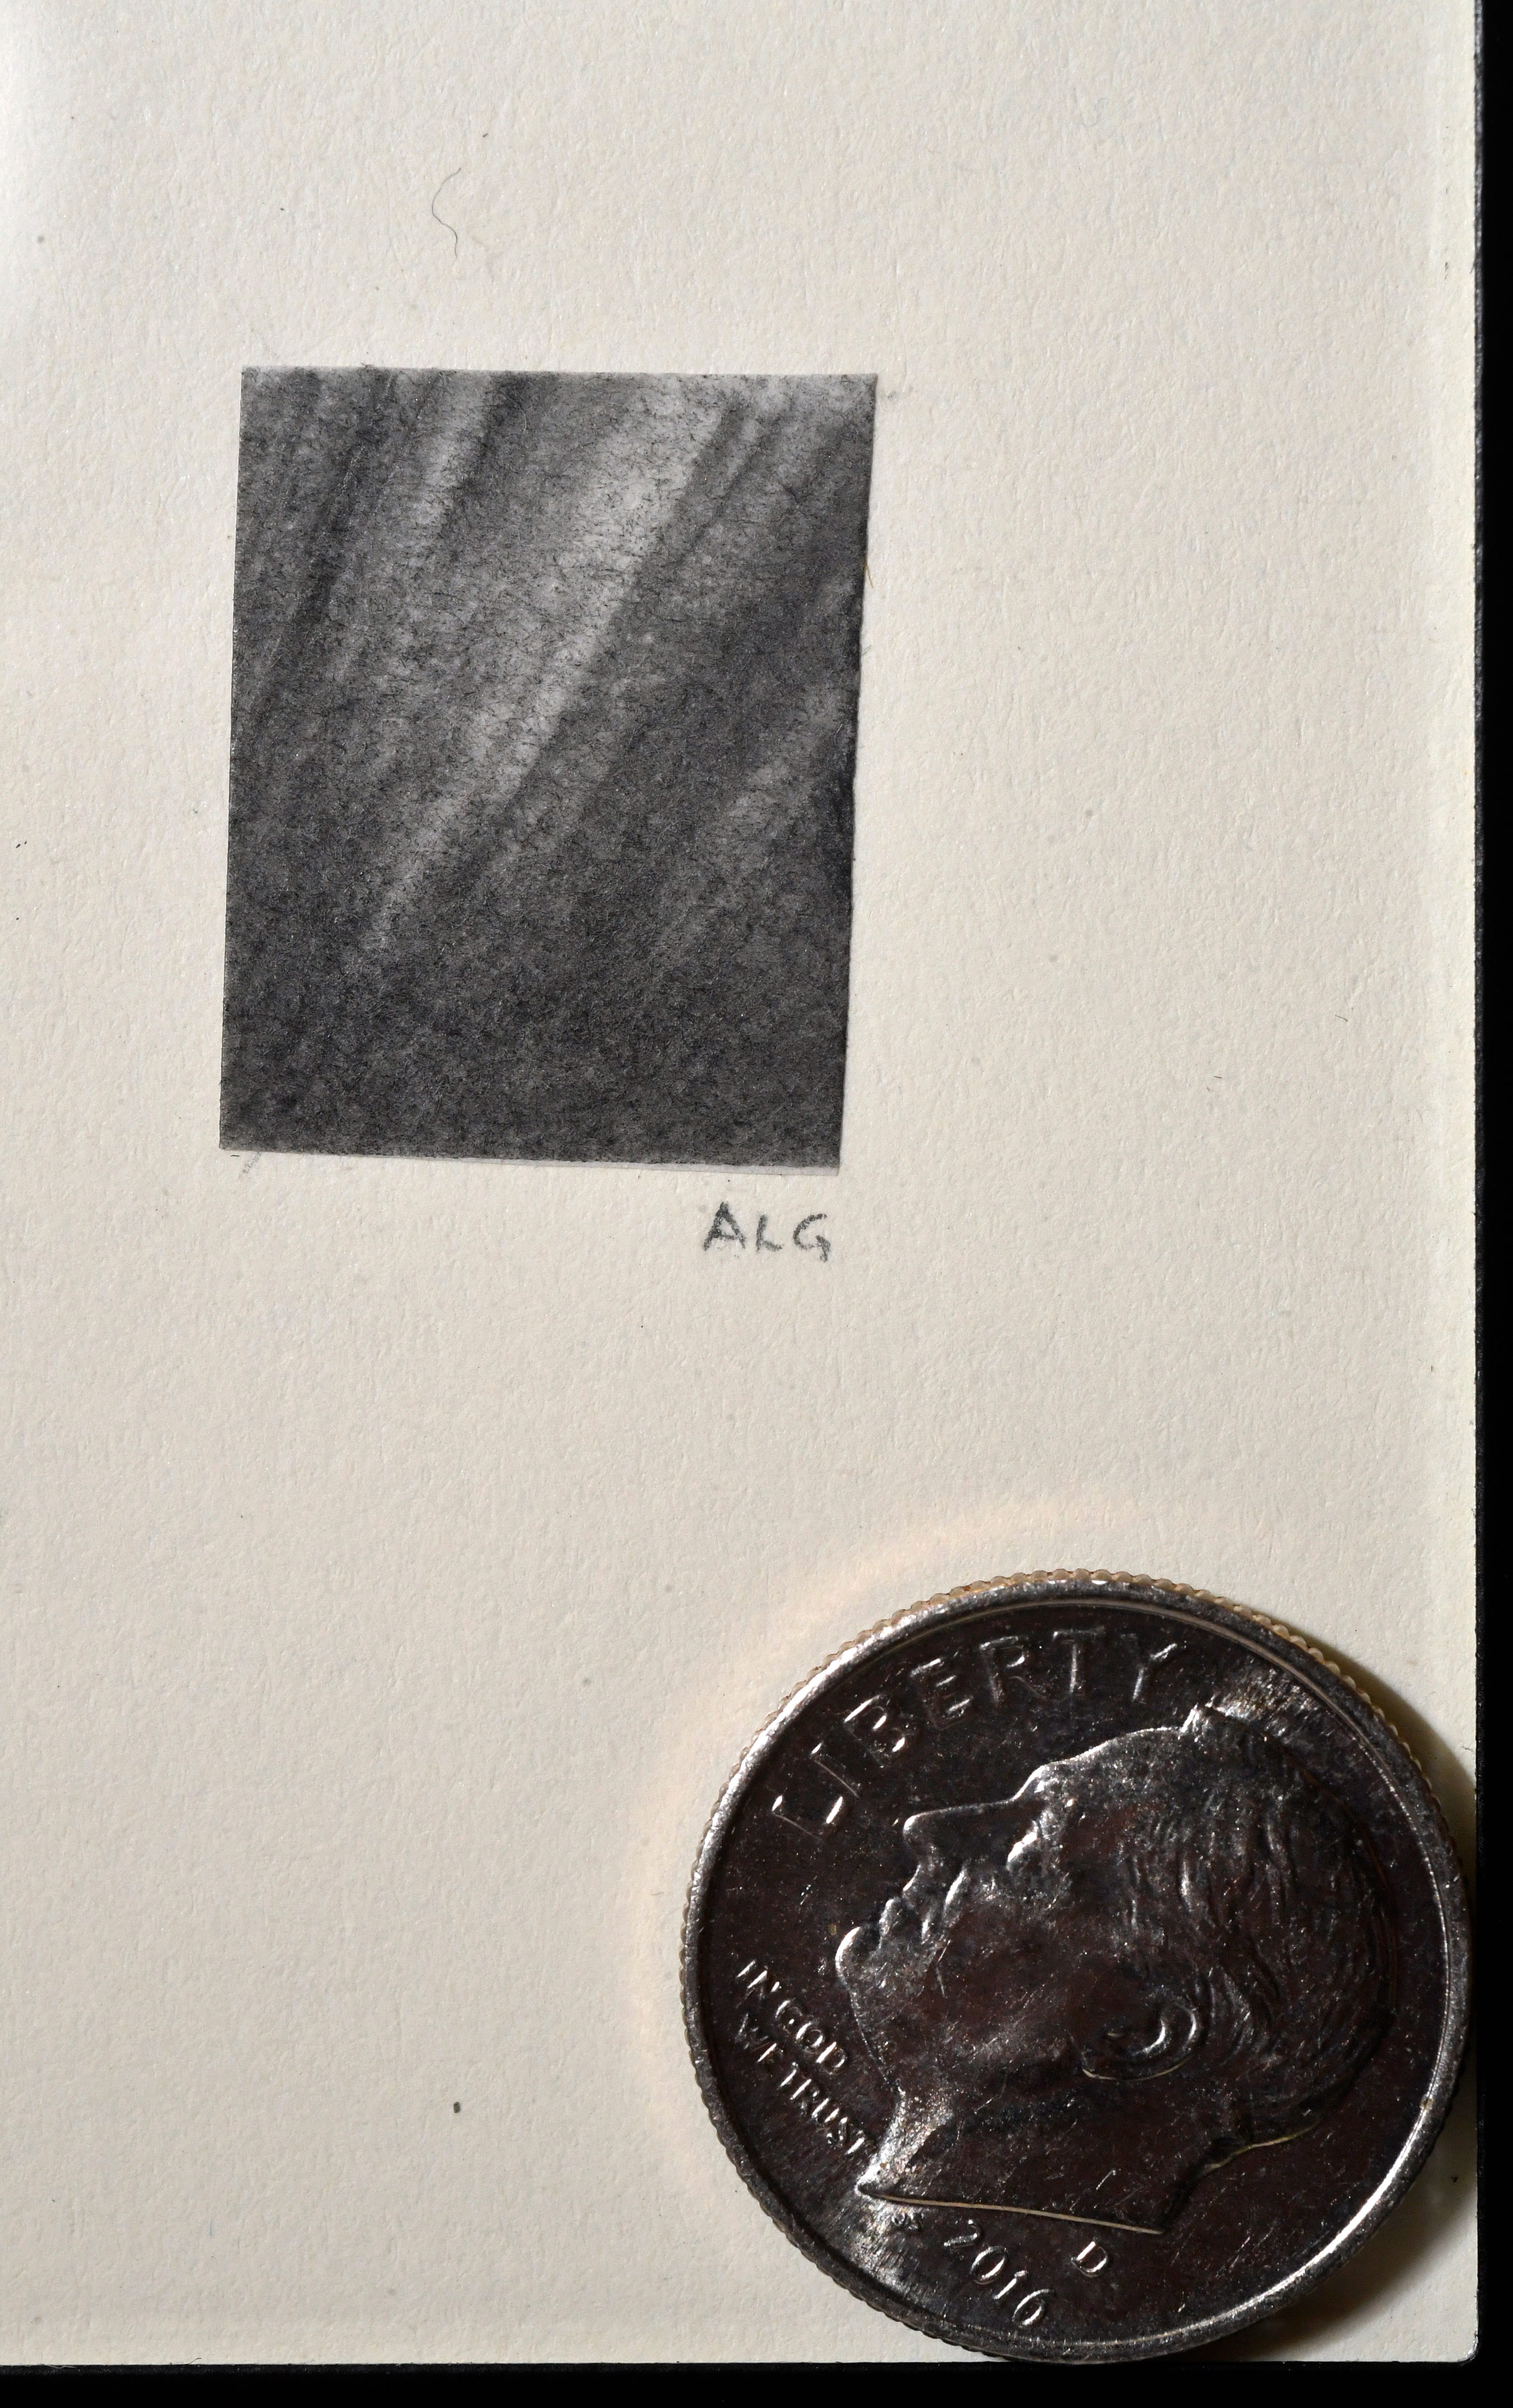 """Amanda Greenwood's """"The Breaking of the Dawn"""" won the award for tiniest art at the """"Tiny Art!"""" show at the 1818 Arthouse in Snyder. The surrealistic pencil drawing measures a half-inch. The dime is included for scale."""